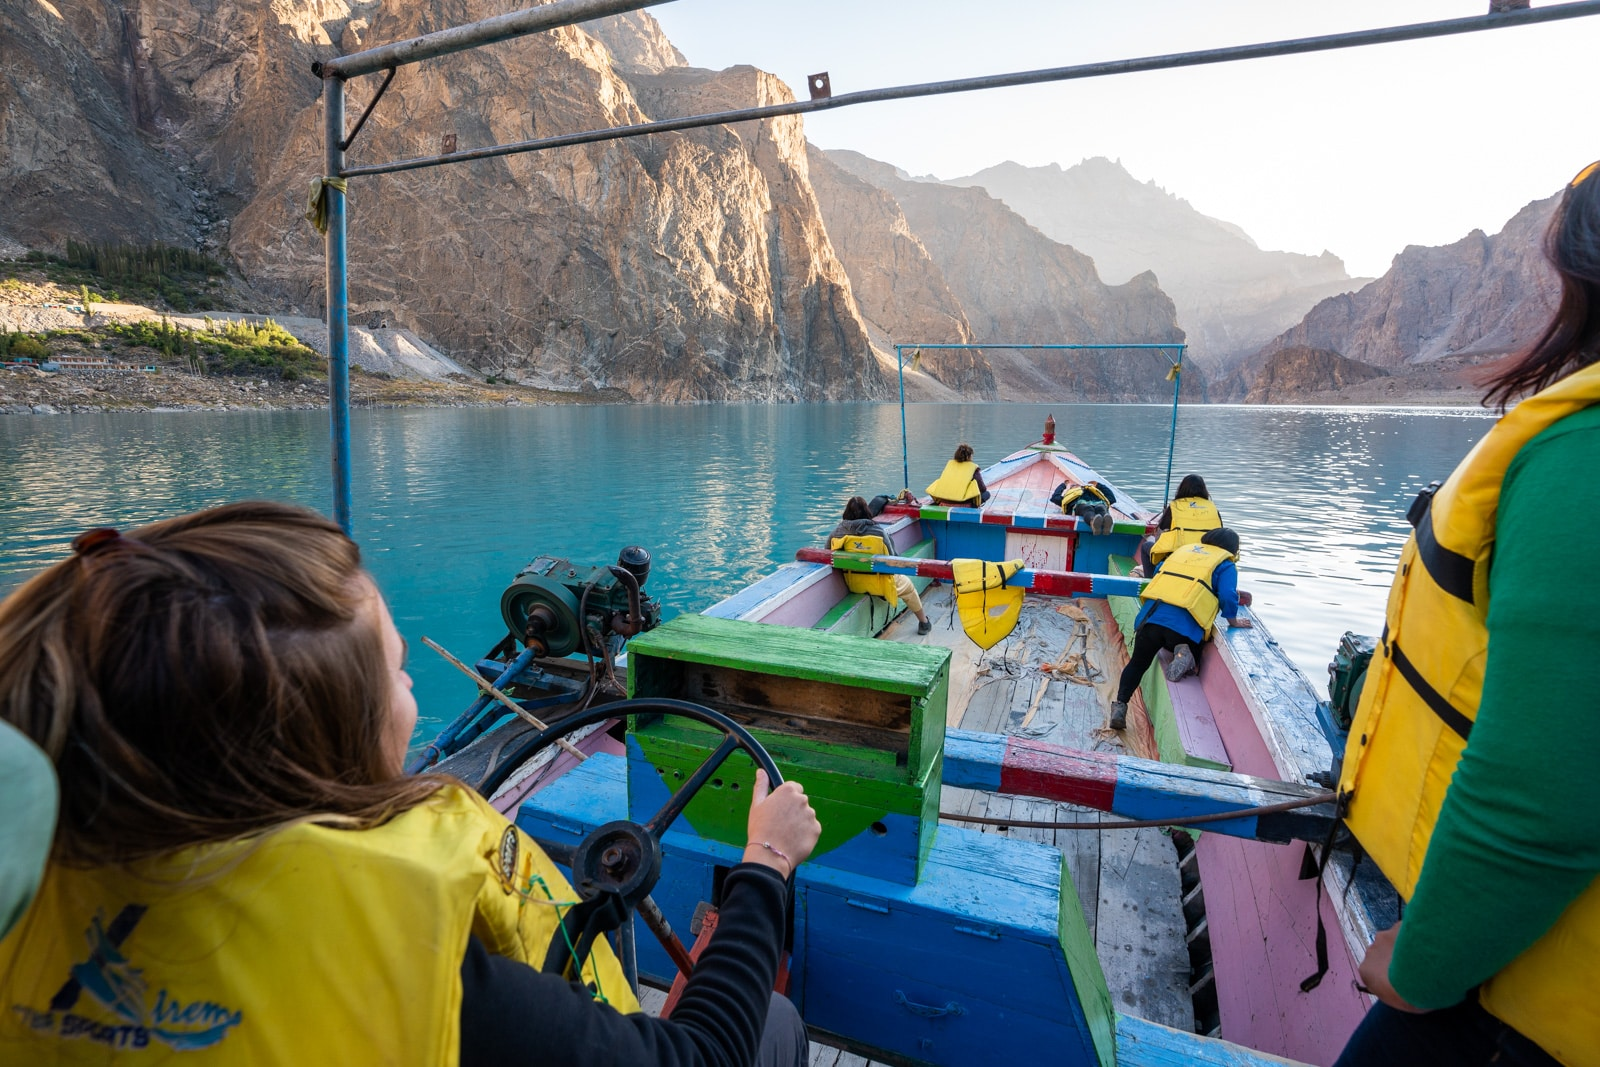 Female travel group boating across Attabad Lake, Gilgit Baltistan, Pakistan